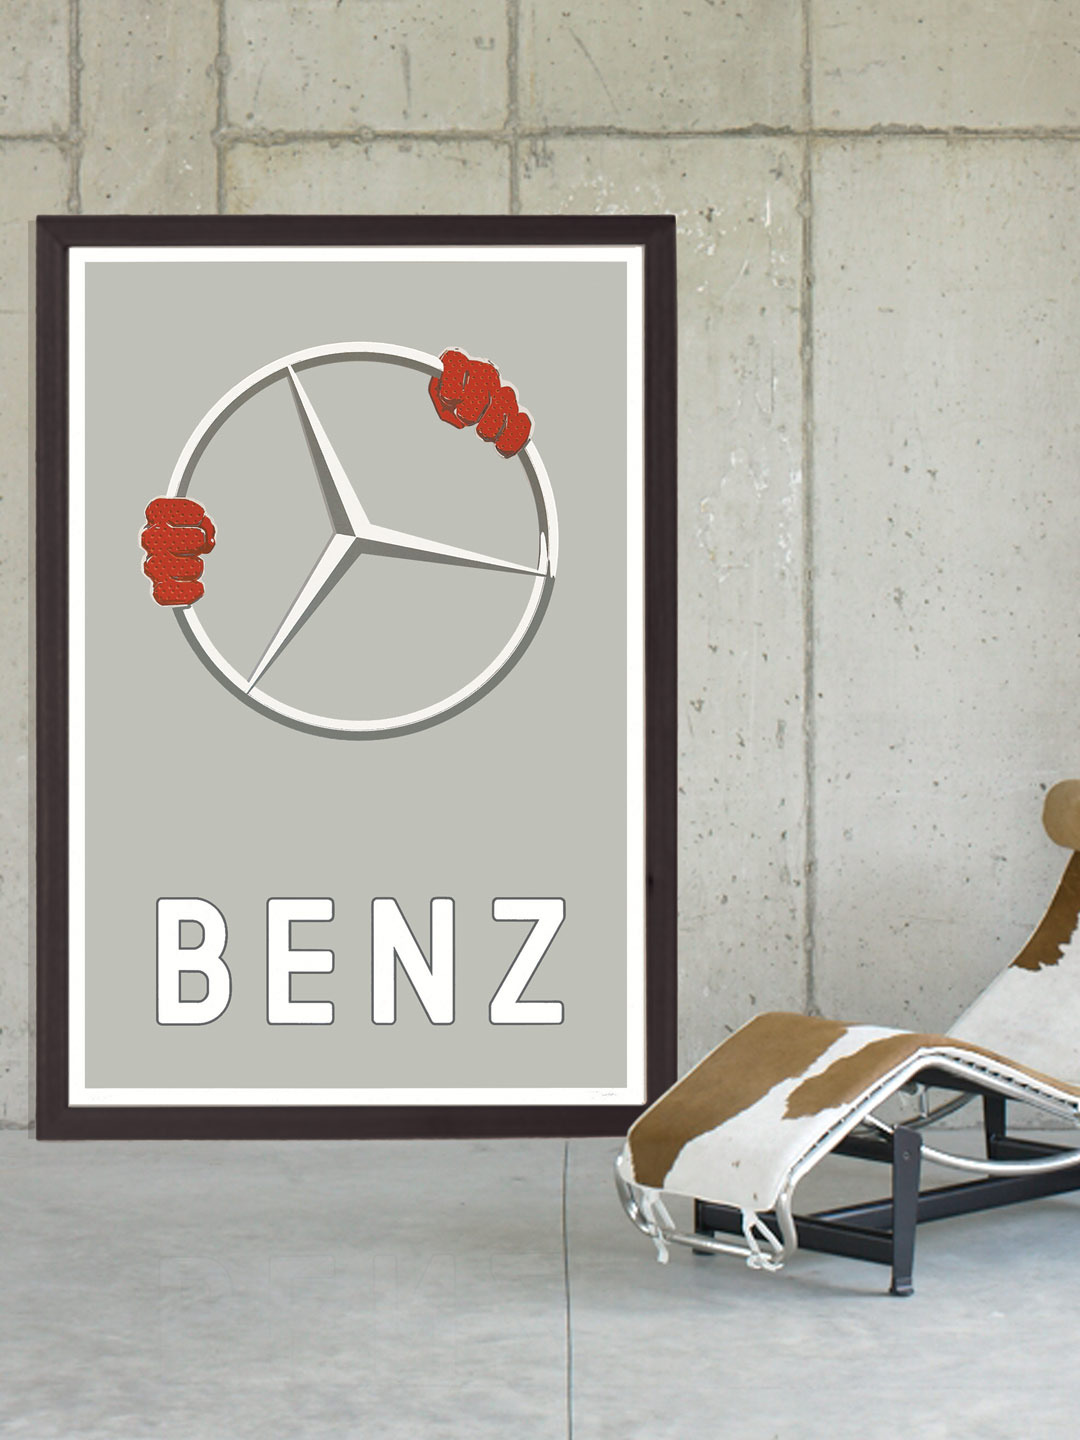 Benz :: By Tom Gianfagna (1)